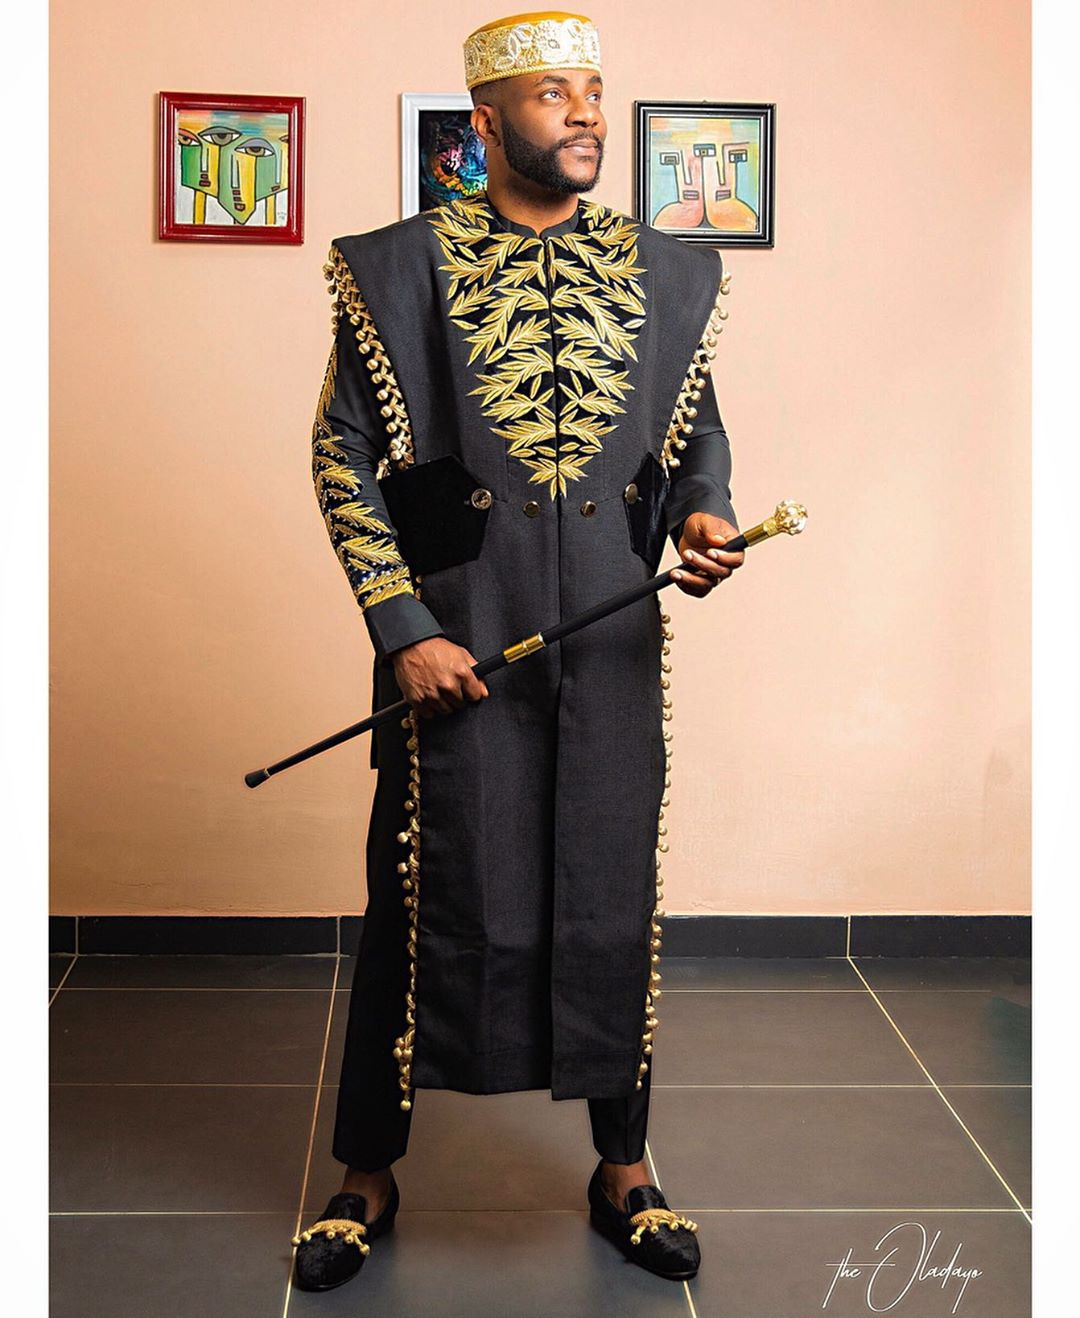 #AMVCA7 Countdown: All The Times Ebuka Obi-Uchendu Was The Host With The Most! | BN Style